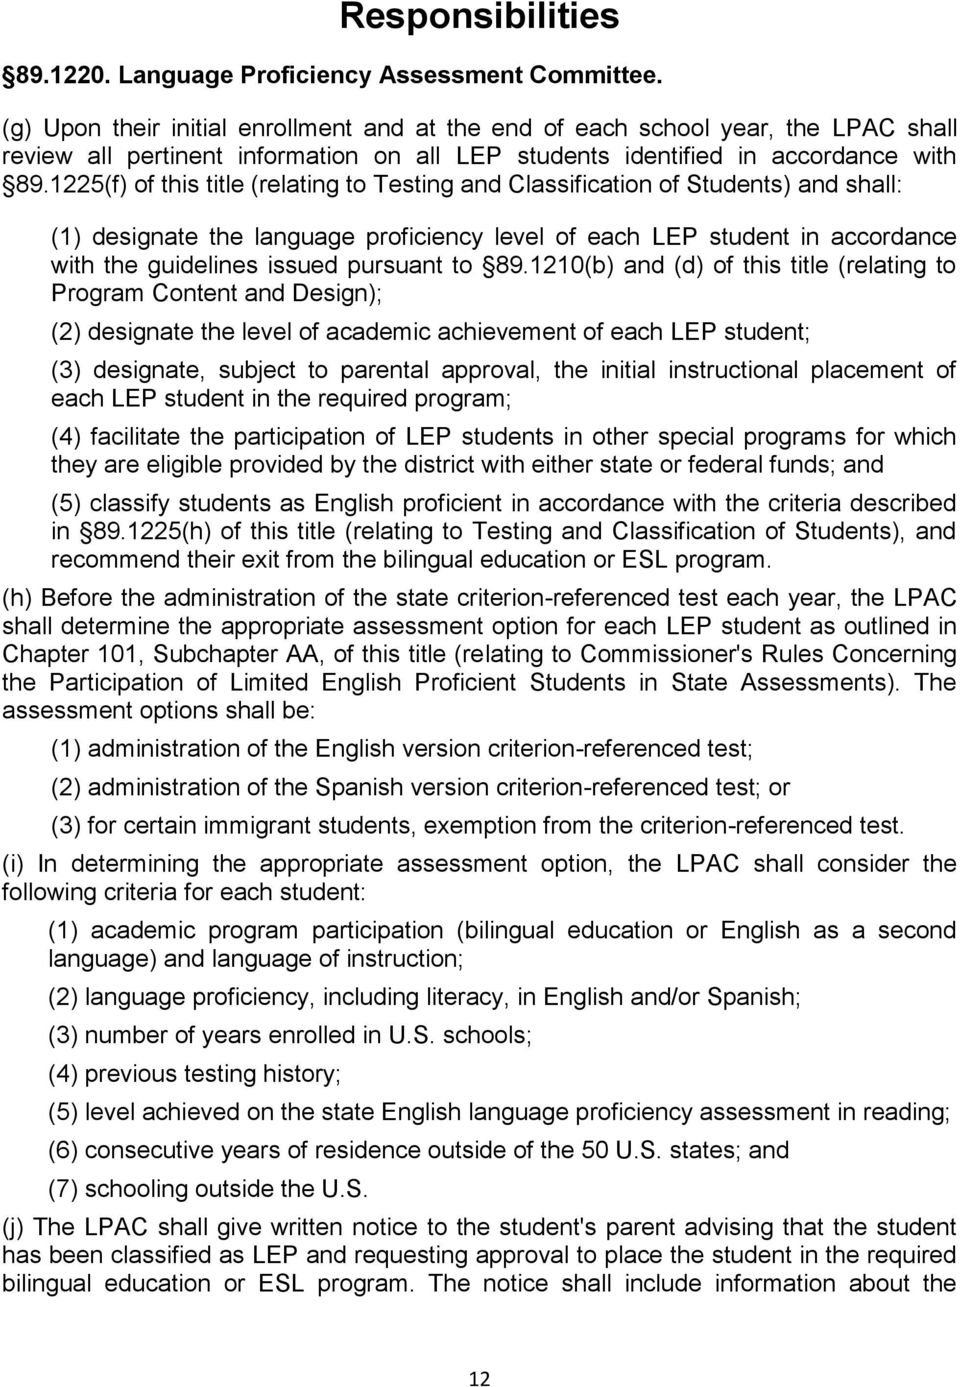 1225(f) of this title (relating to Testing and Classification of Students) and shall: (1) designate the language proficiency level of each LEP student in accordance with the guidelines issued